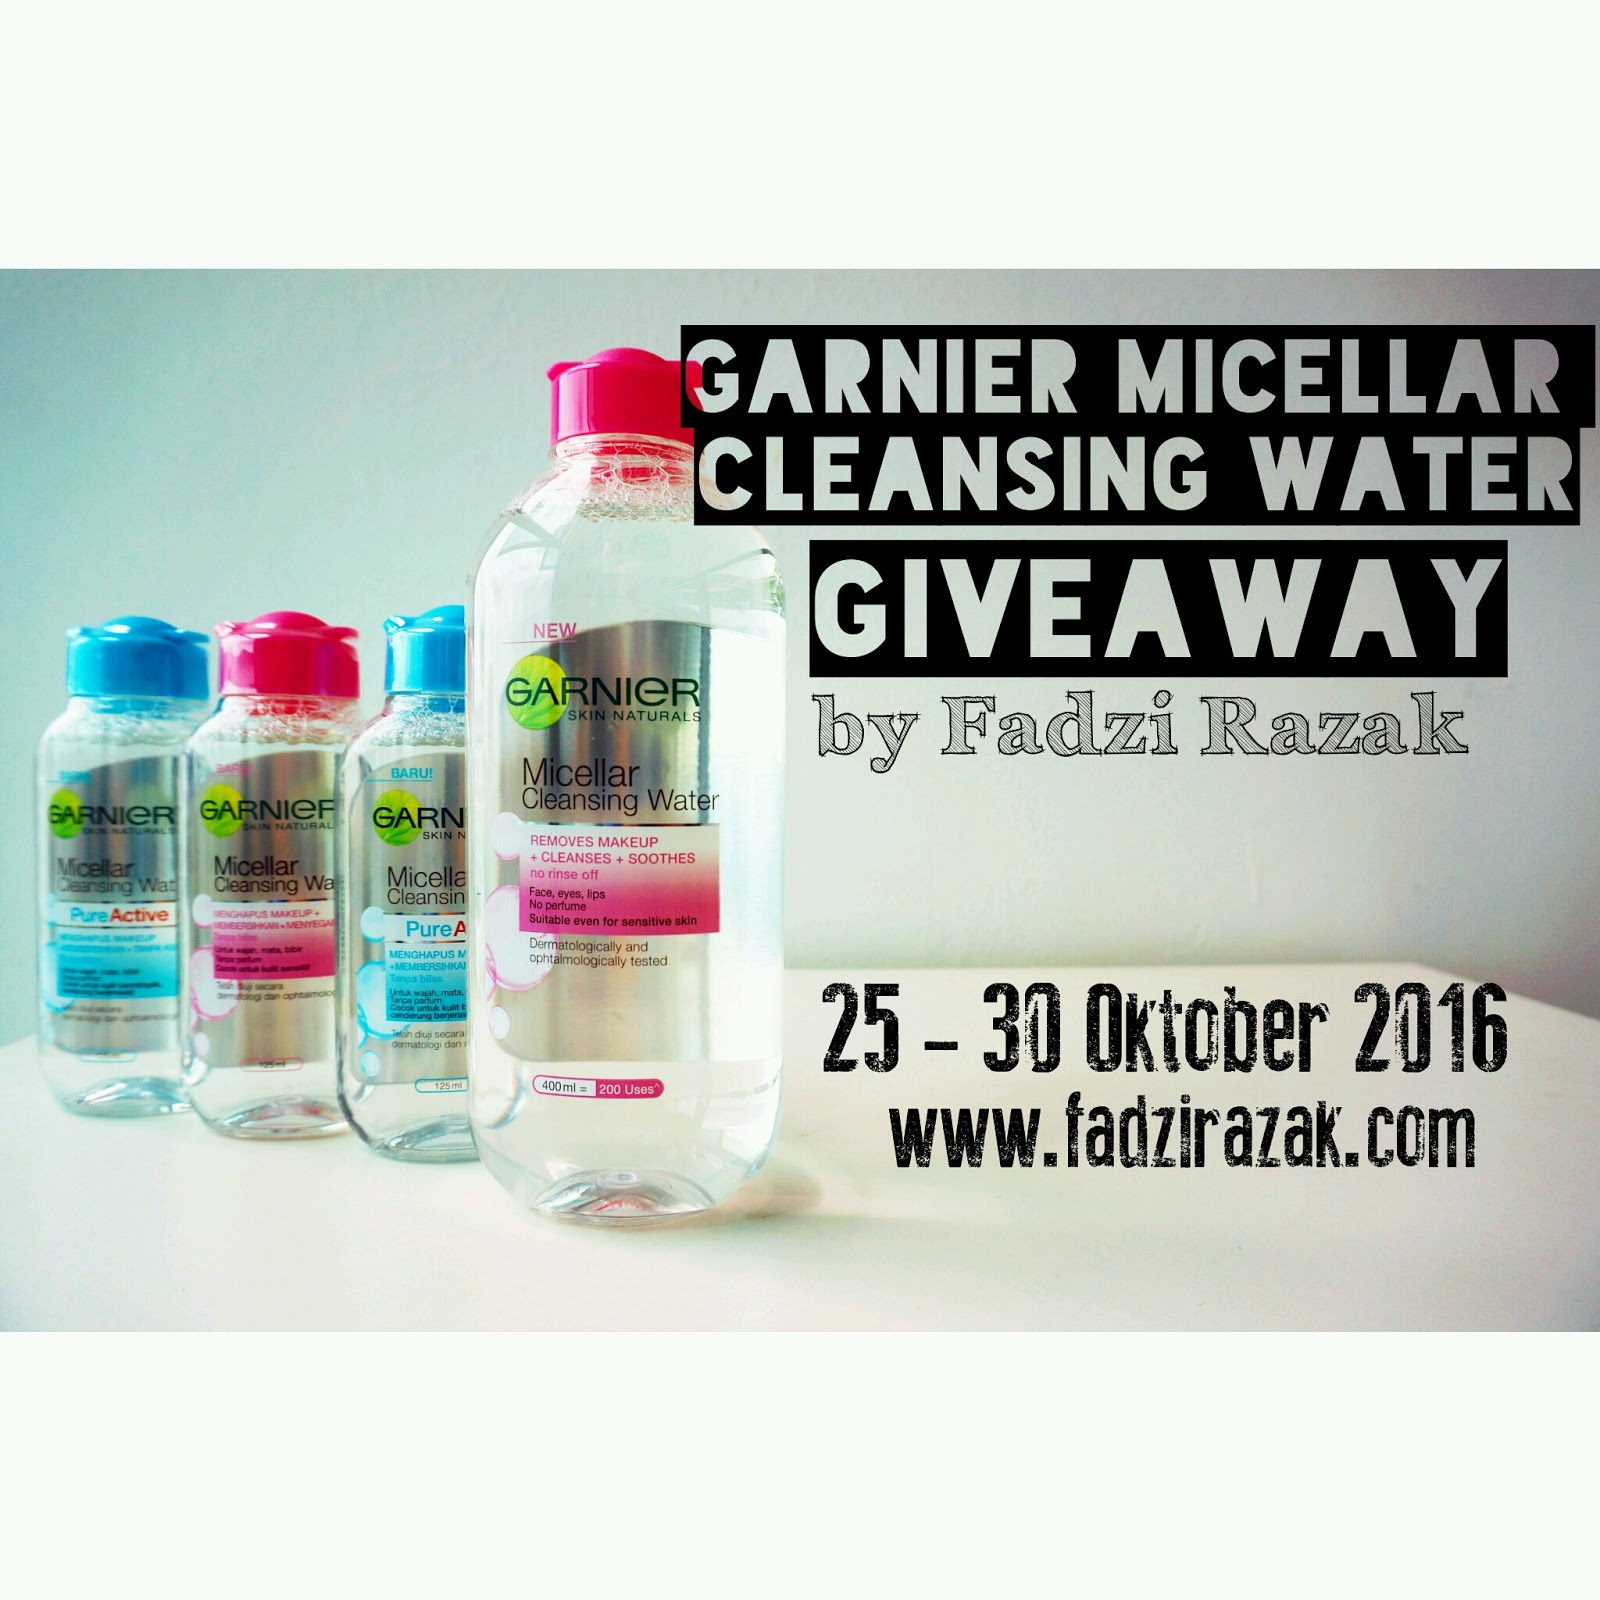 Giveaway Garnier Micellar Cleansing Water by Fadzi Razak